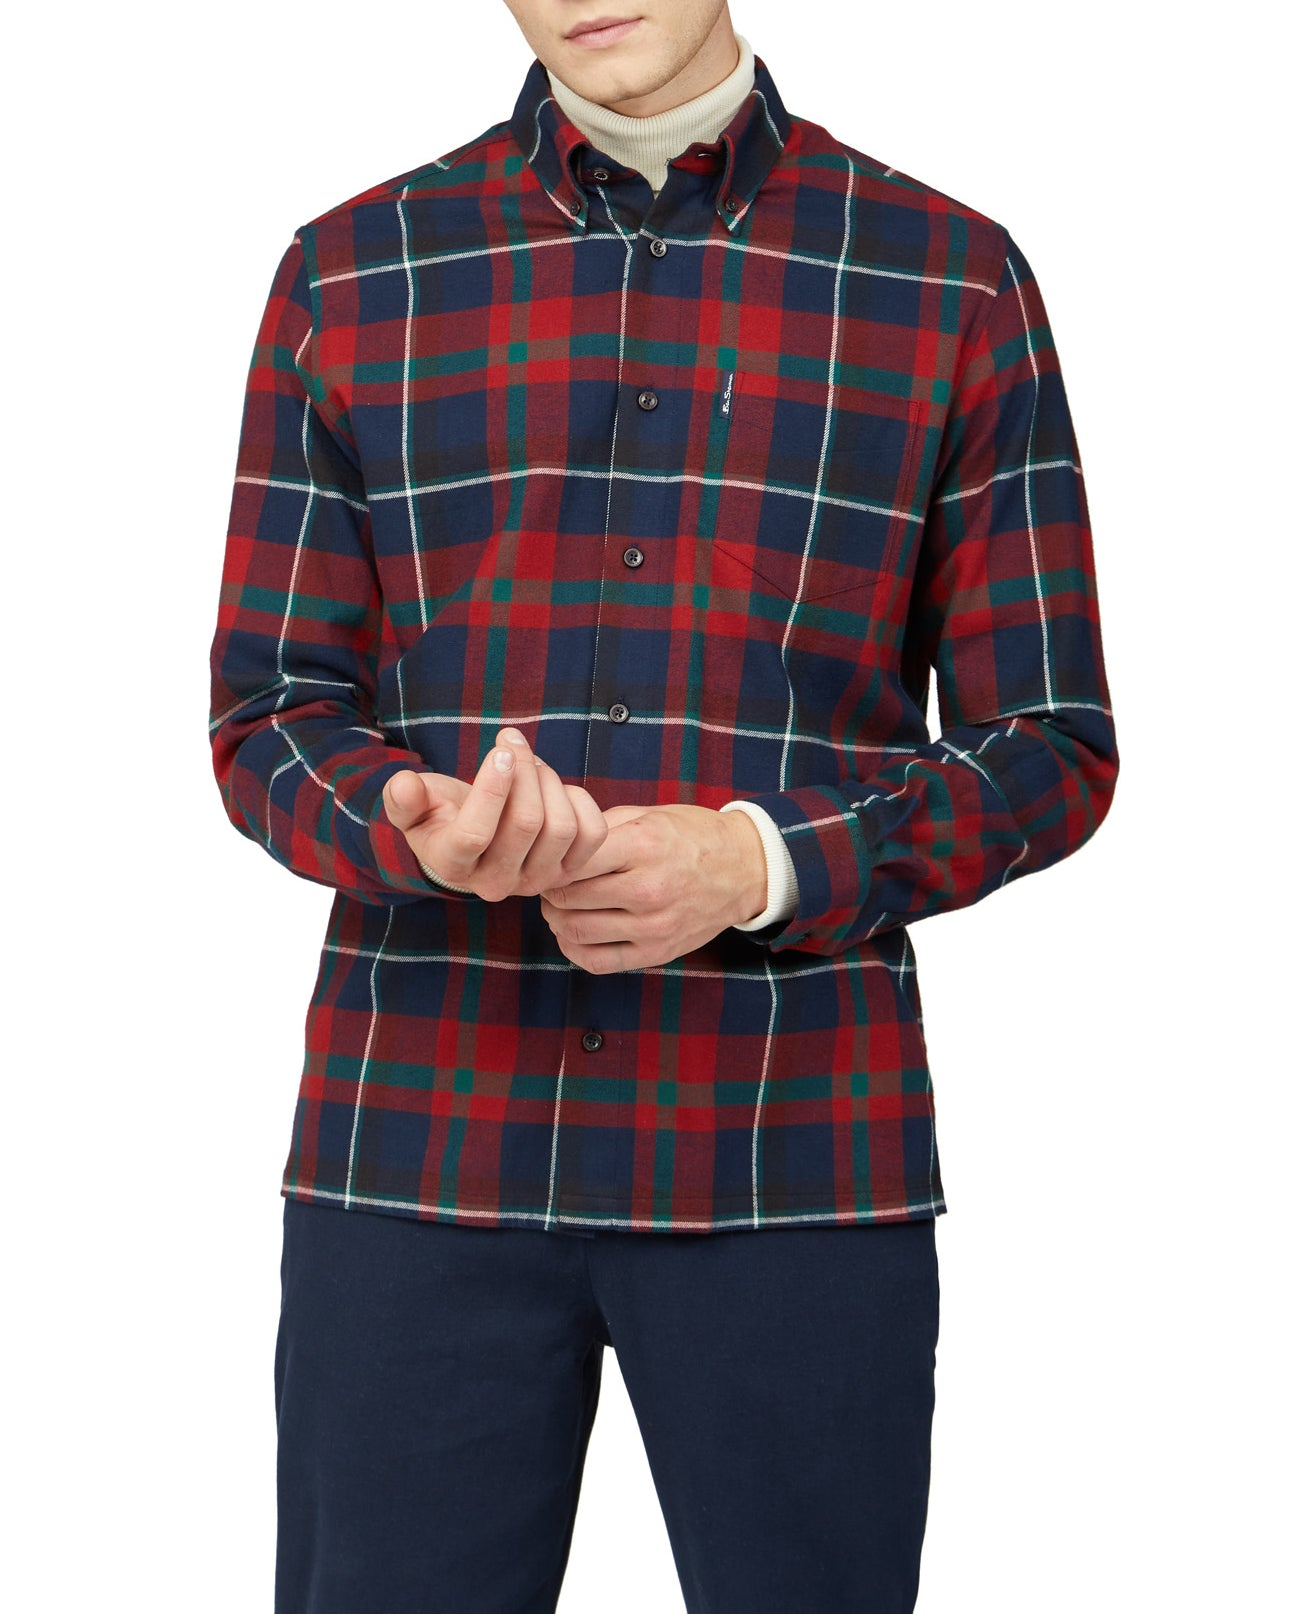 Oversized Brushed Tartan Shirt - Red